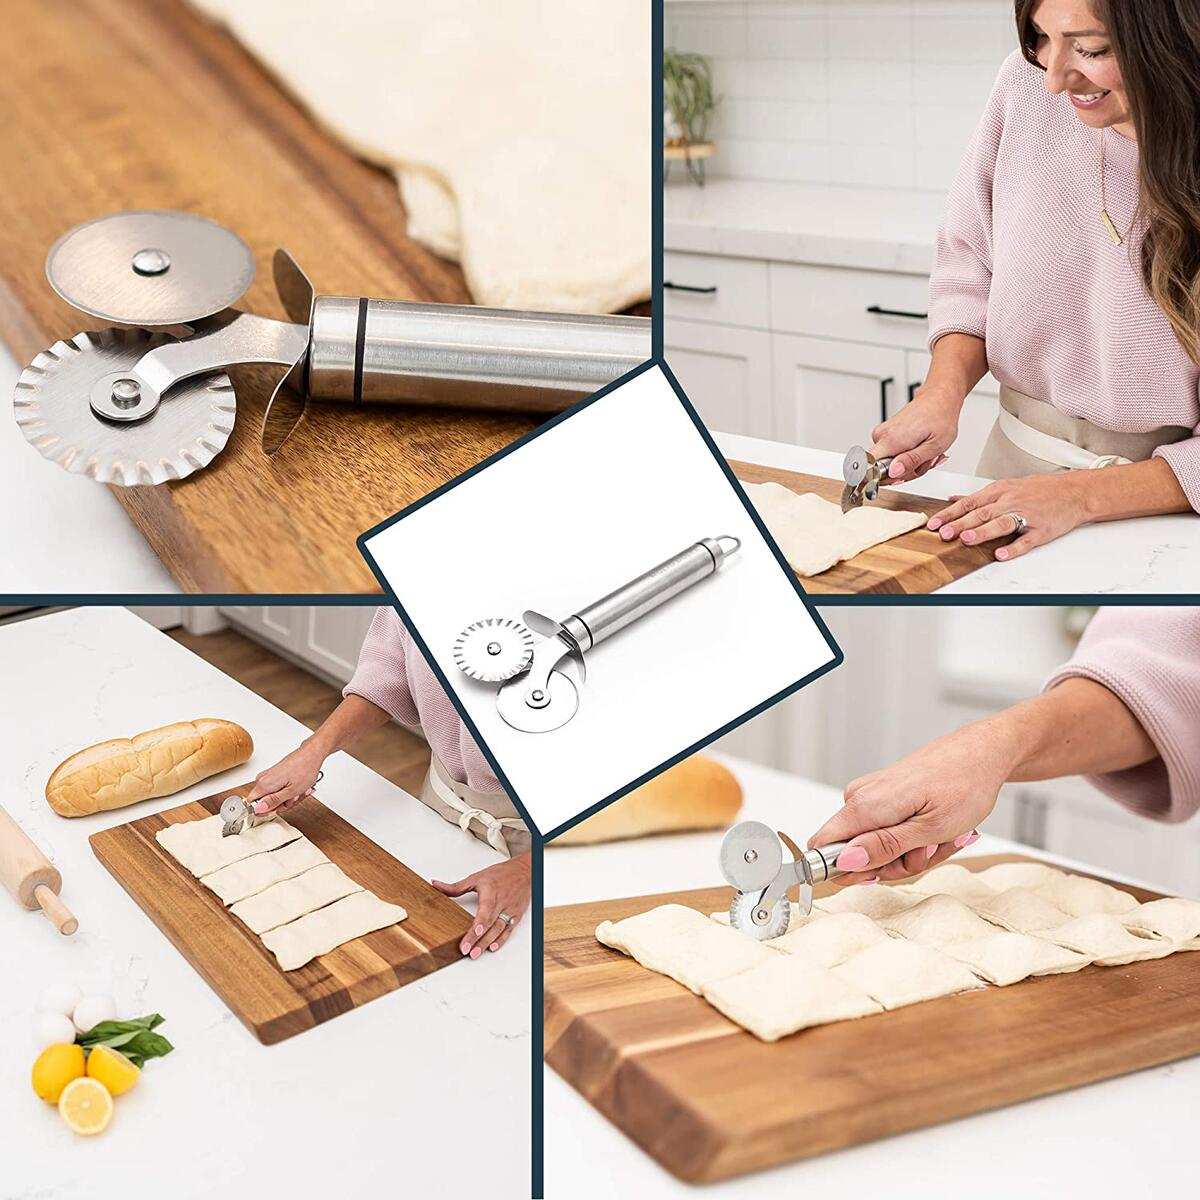 Molto Dolce 5 Wheel Pastry Cutter Set. 3pc Dough Cutter Kit with Accordian Cutter, Dual Ravioli Cutter Pizza Wheel, and Dough Scraper. Stainless Steel Brownie Cutter, Bench Scraper and Pasta Maker